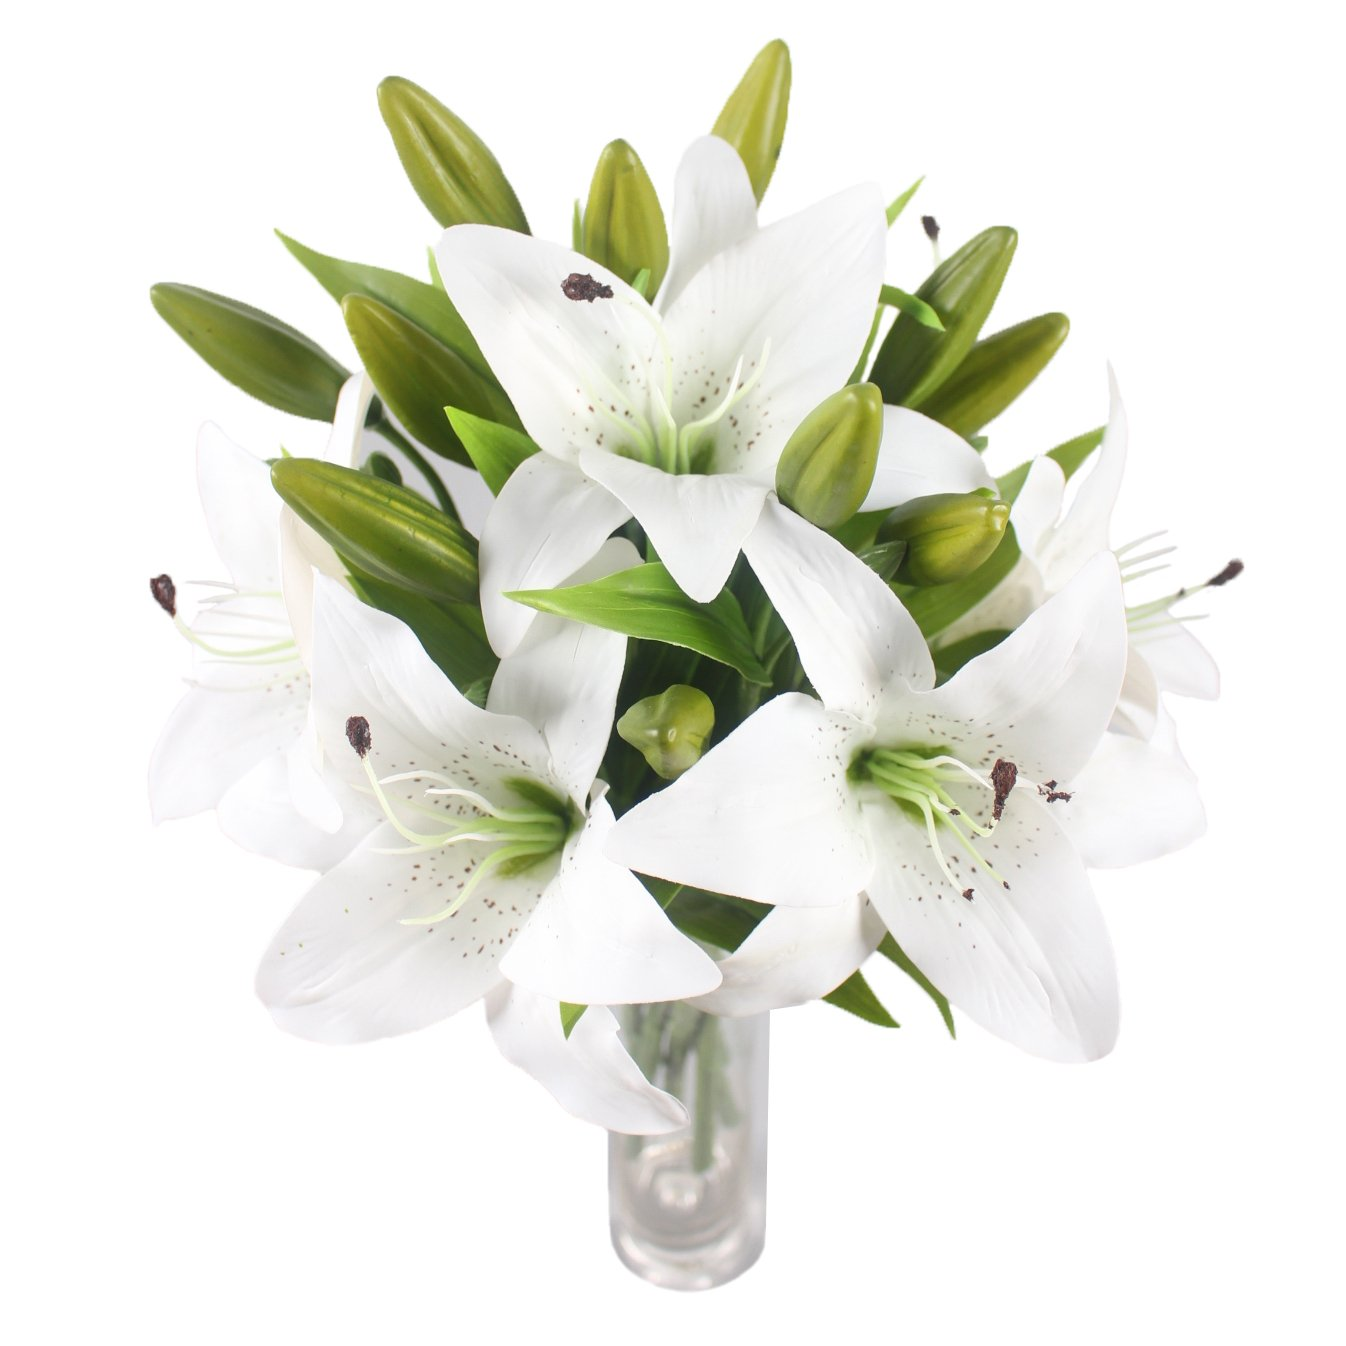 Amazon jarown 6 pcs tiger lily artificial real touch flowers amazon jarown 6 pcs tiger lily artificial real touch flowers wedding bouquets for home office decoration white home kitchen izmirmasajfo